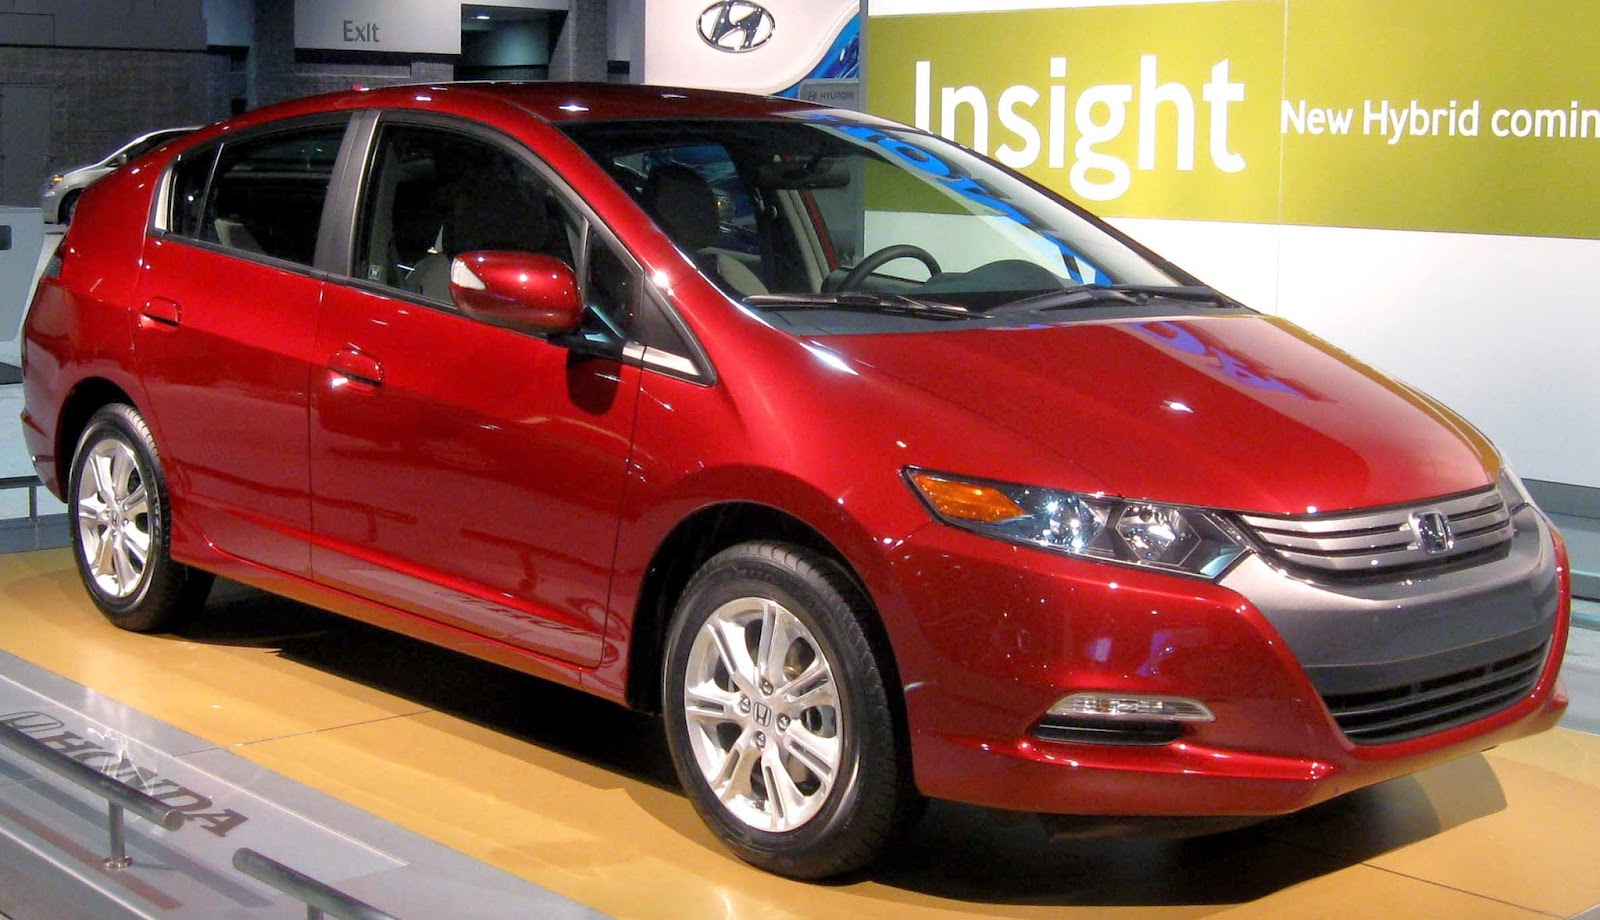 2010 Honda Insight hybrid electric vehicle